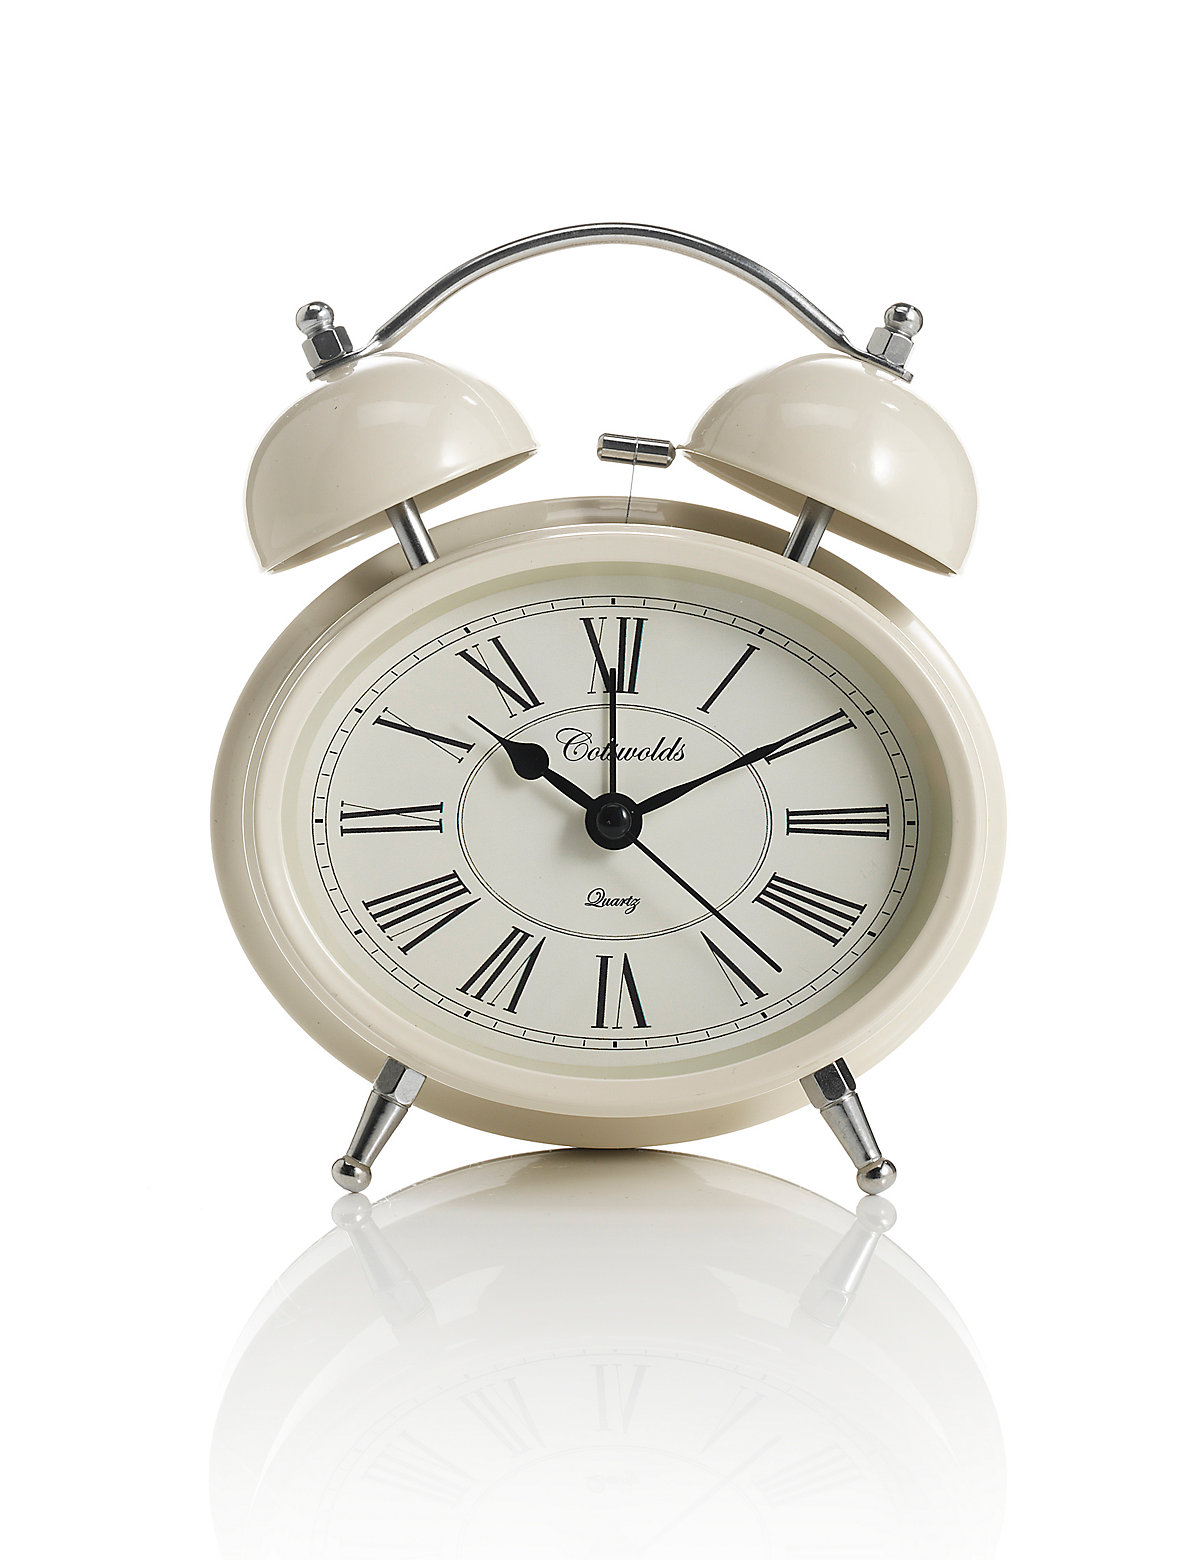 buy cheap analogue alarm clock compare products prices for best uk deals. Black Bedroom Furniture Sets. Home Design Ideas